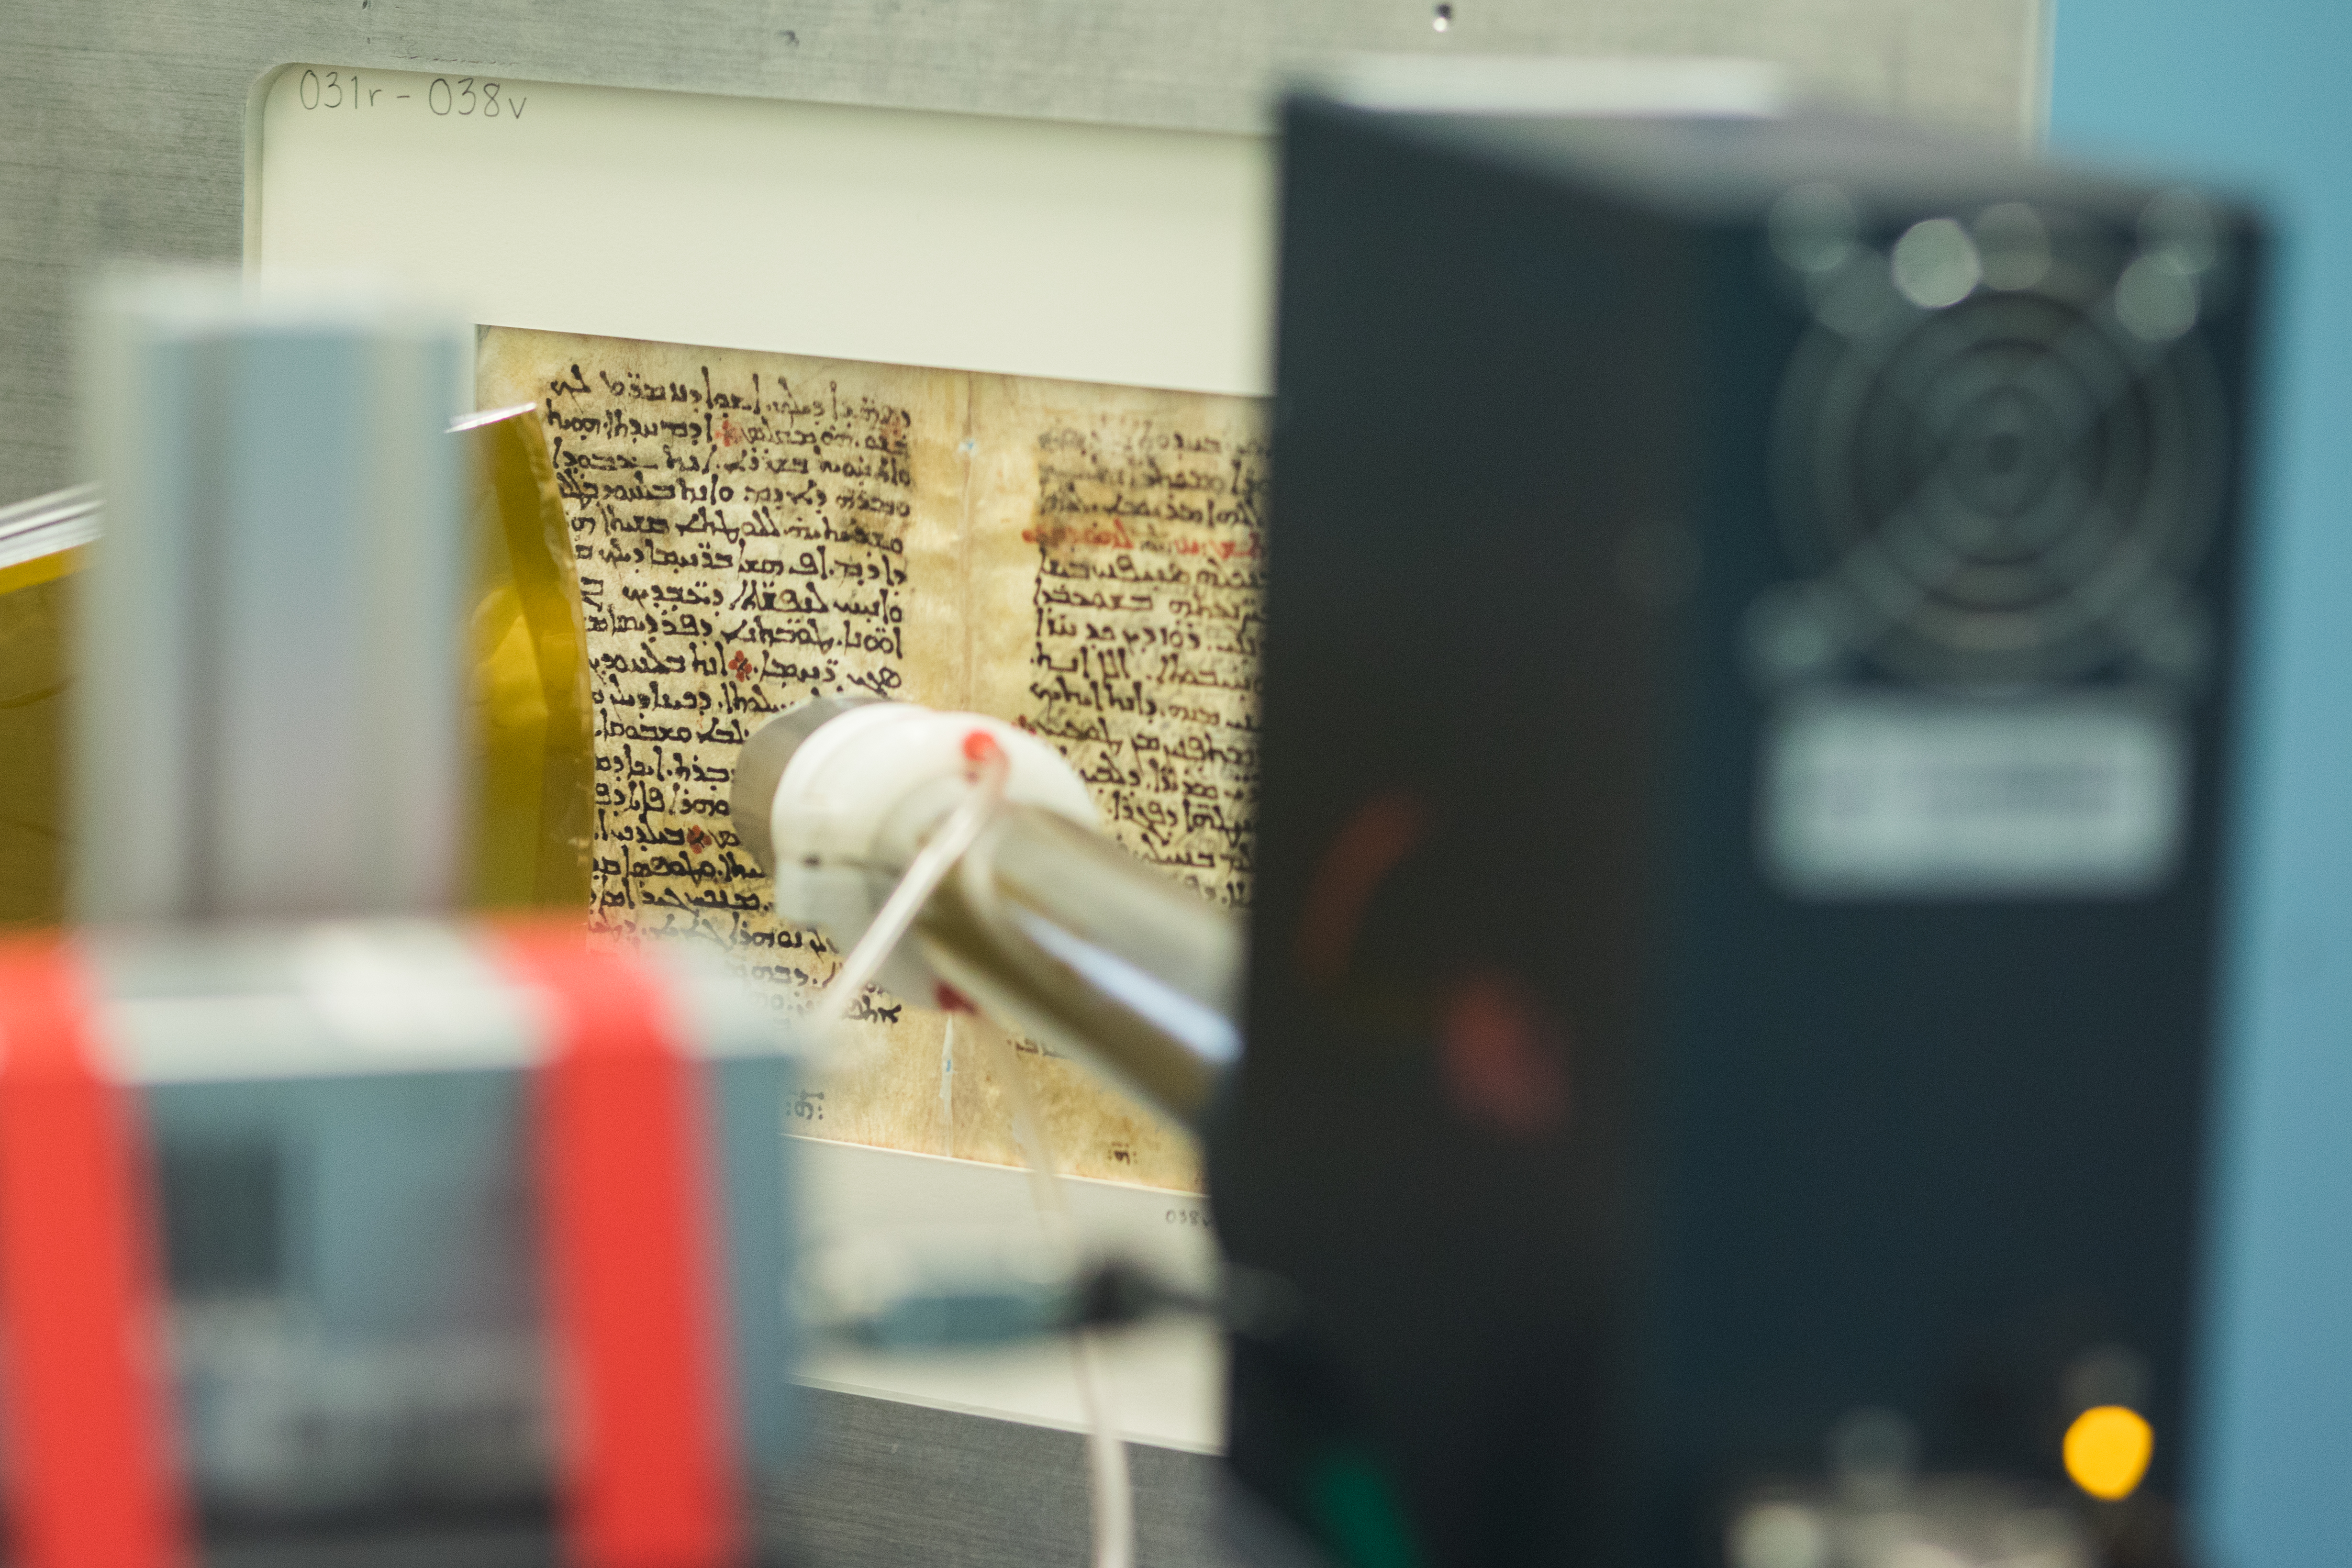 Global Team Uncovers Ancient Medical Texts Using X-Ray Imaging at SLAC